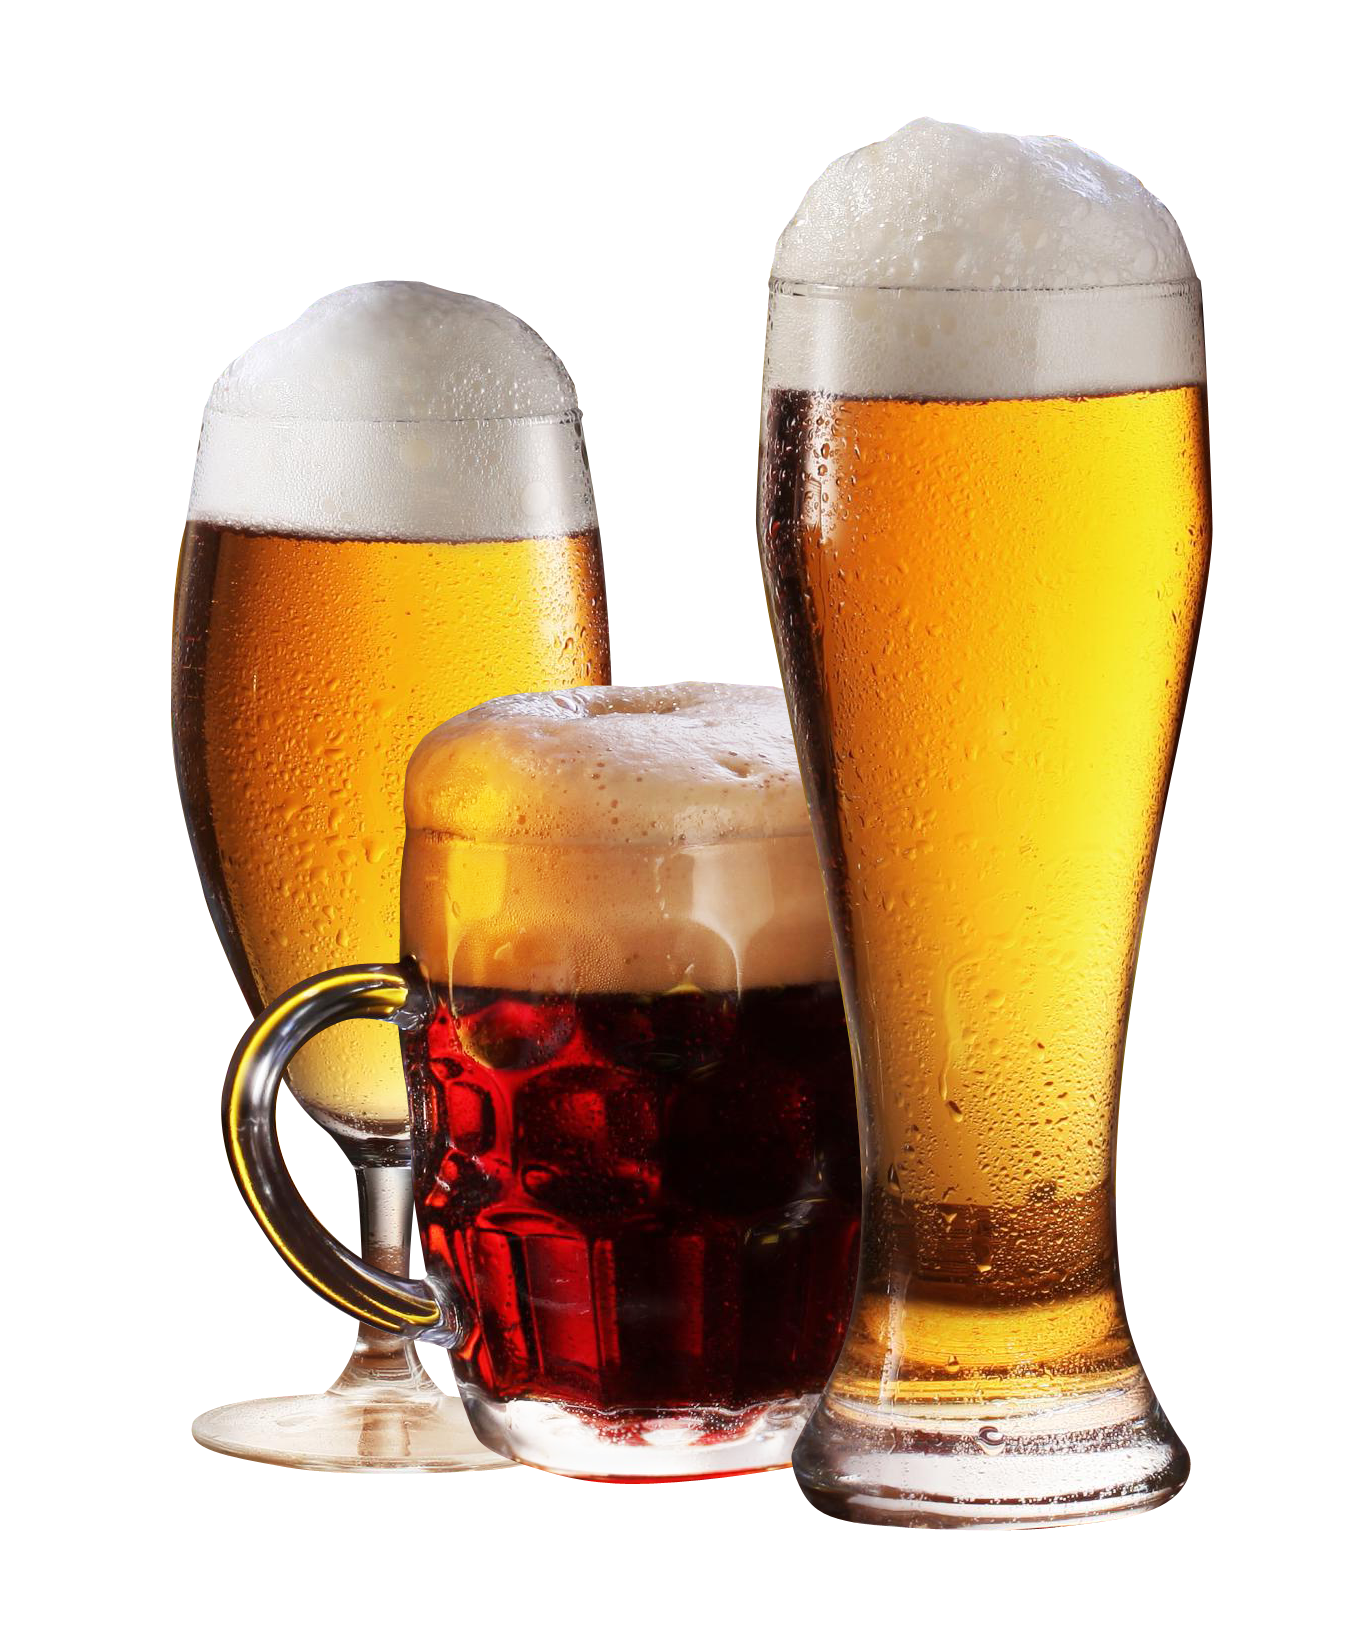 Alcohol glass png. Beer image purepng free